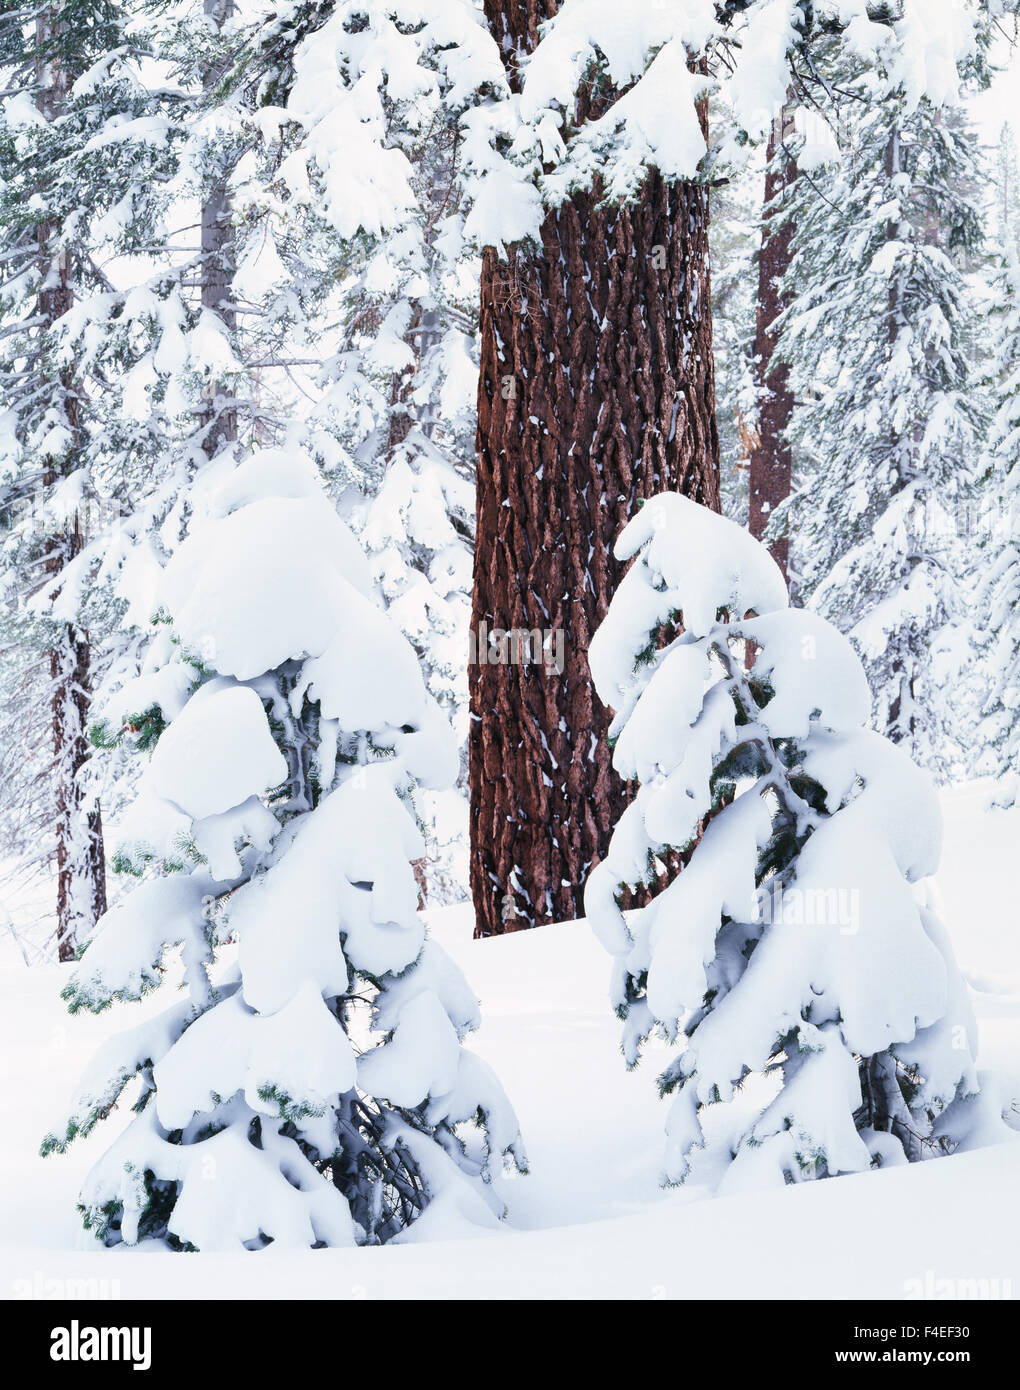 California, Sierra Nevada Mountains, Inyo National Forest, A red fir tree trunk (Abies Magnifica) in a snow-covered - Stock Image